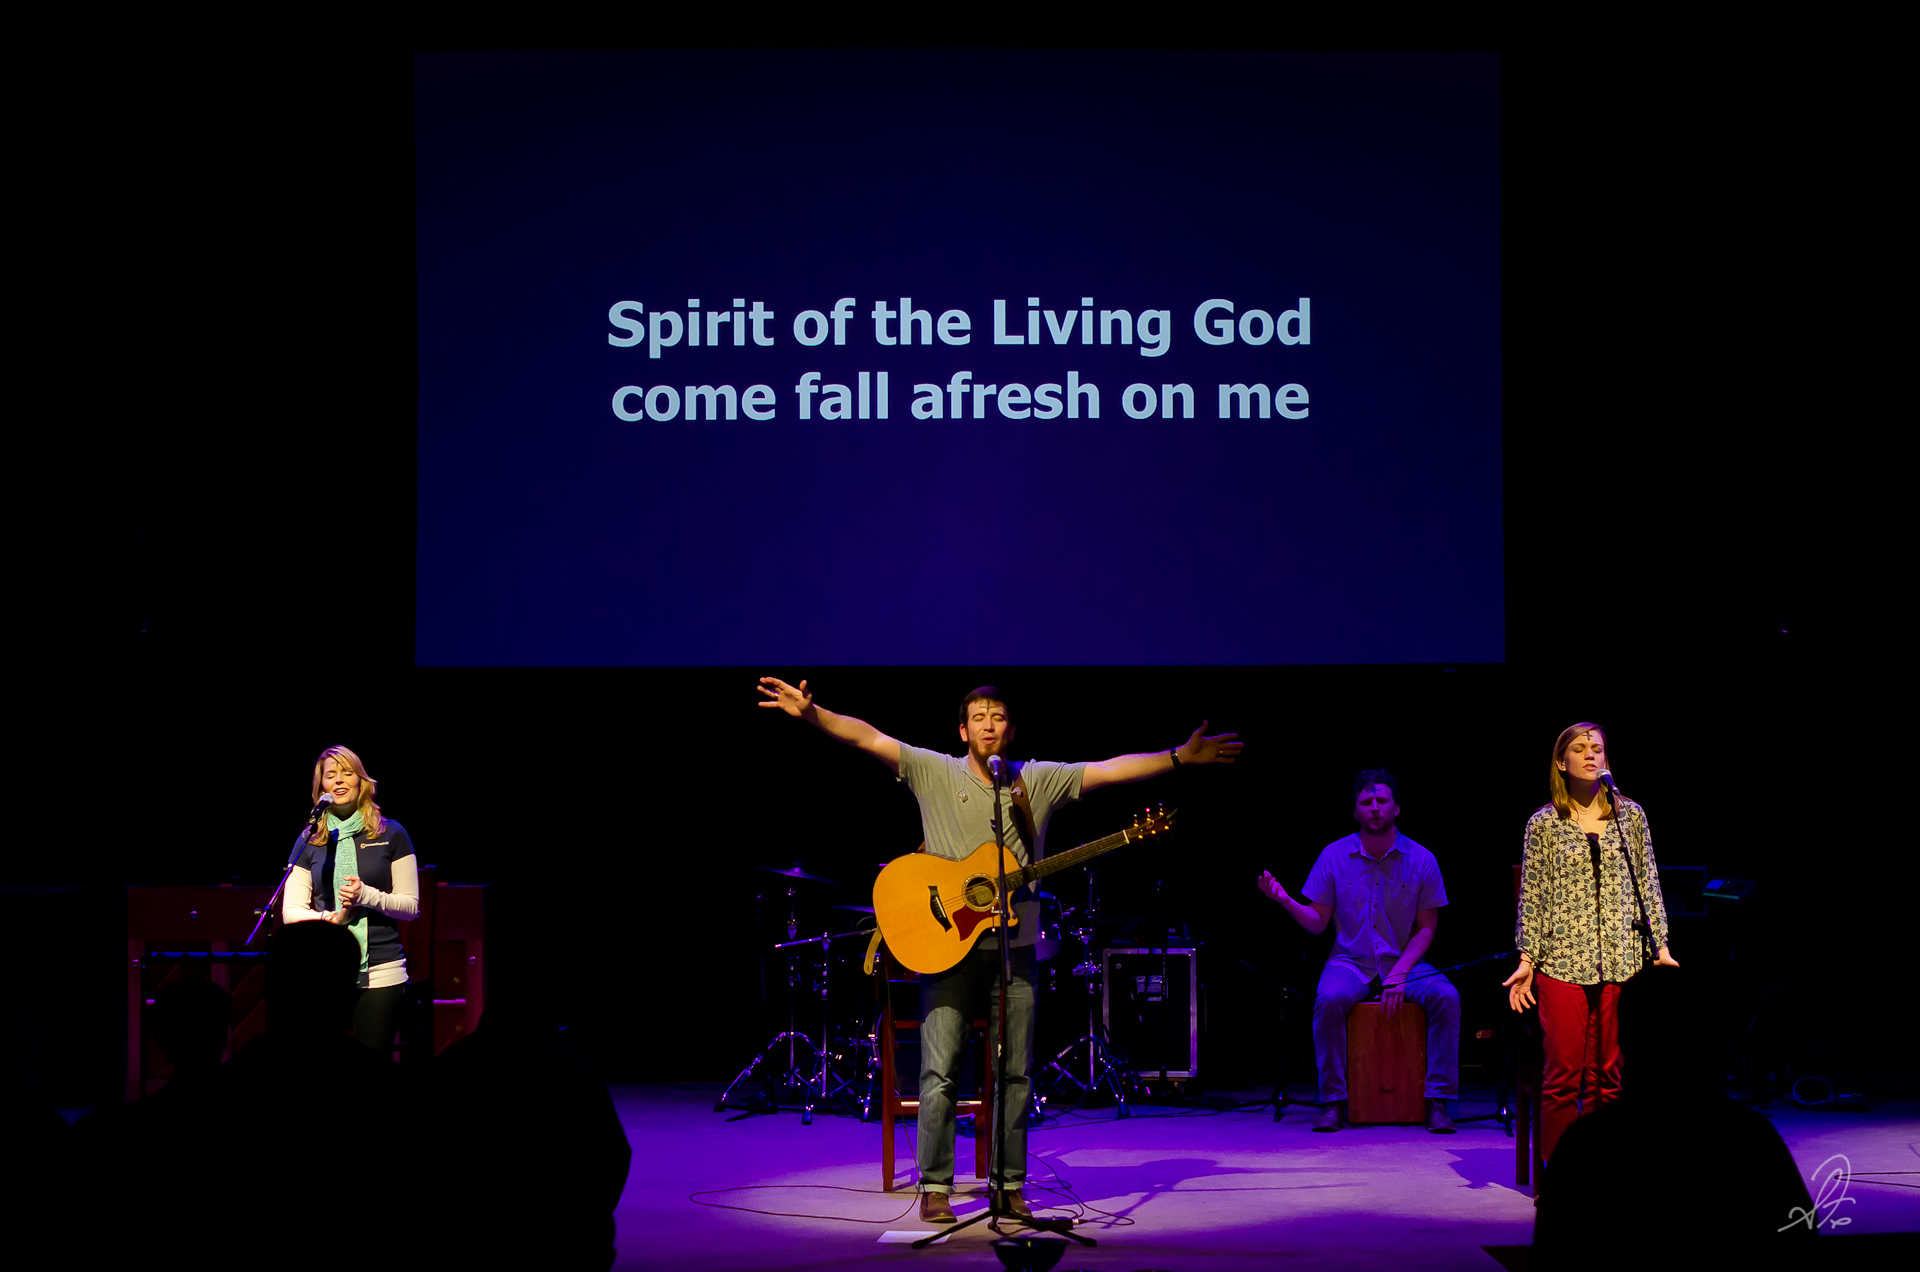 Worship Spirit of the Living God